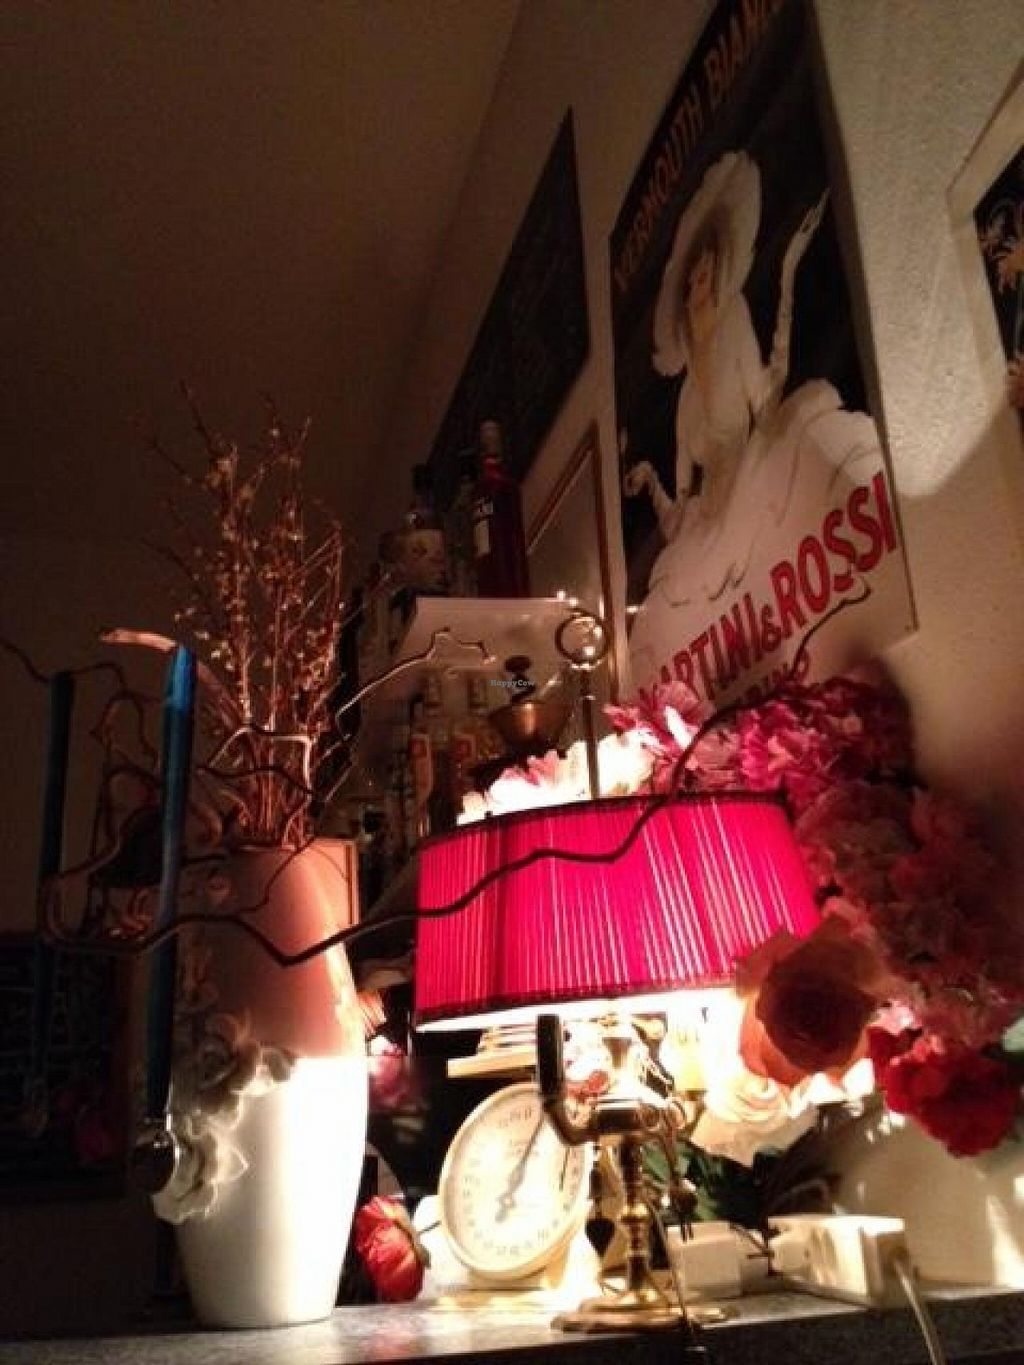 """Photo of CLOSED: Cafebar Salon  by <a href=""""/members/profile/TableForOne"""">TableForOne</a> <br/>Kitsch <br/> December 7, 2014  - <a href='/contact/abuse/image/28836/87398'>Report</a>"""